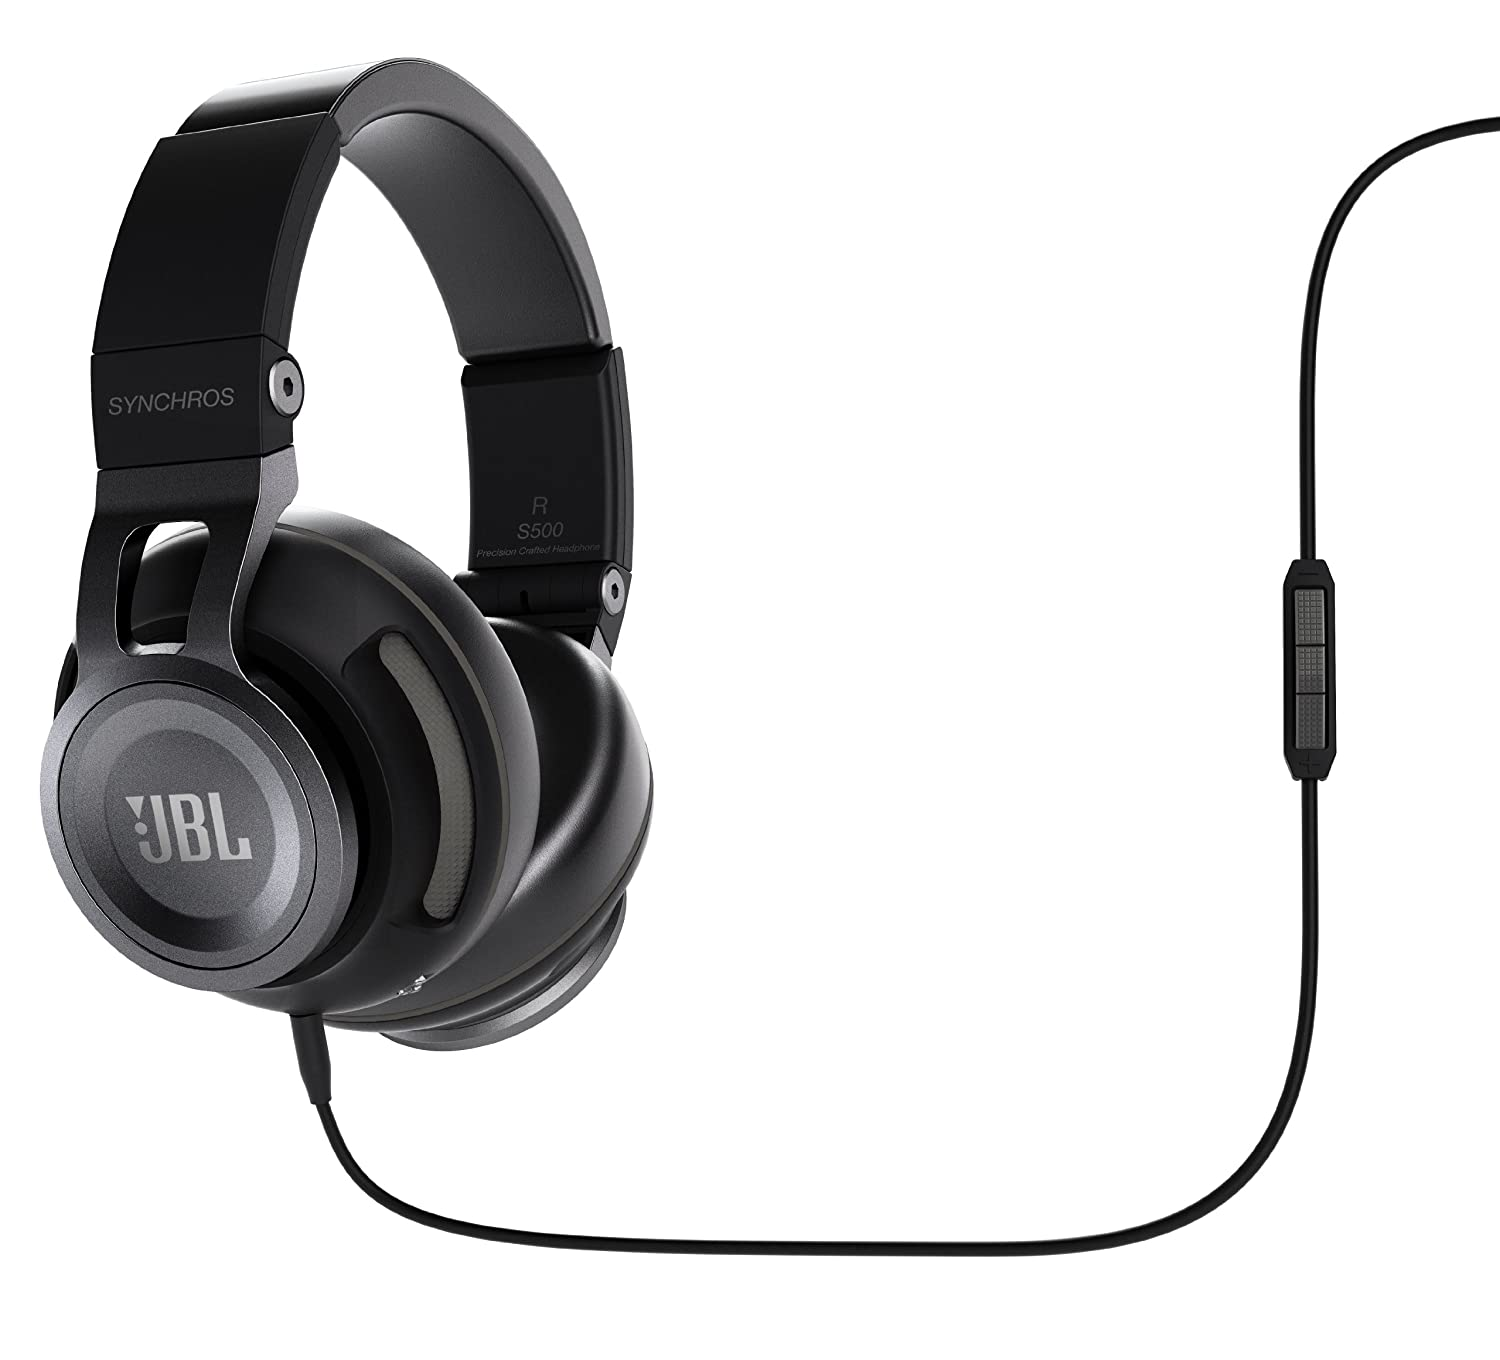 JBL Synchros S500 Powered Over-Ear Stereo Headphones Reviews in 2020 1